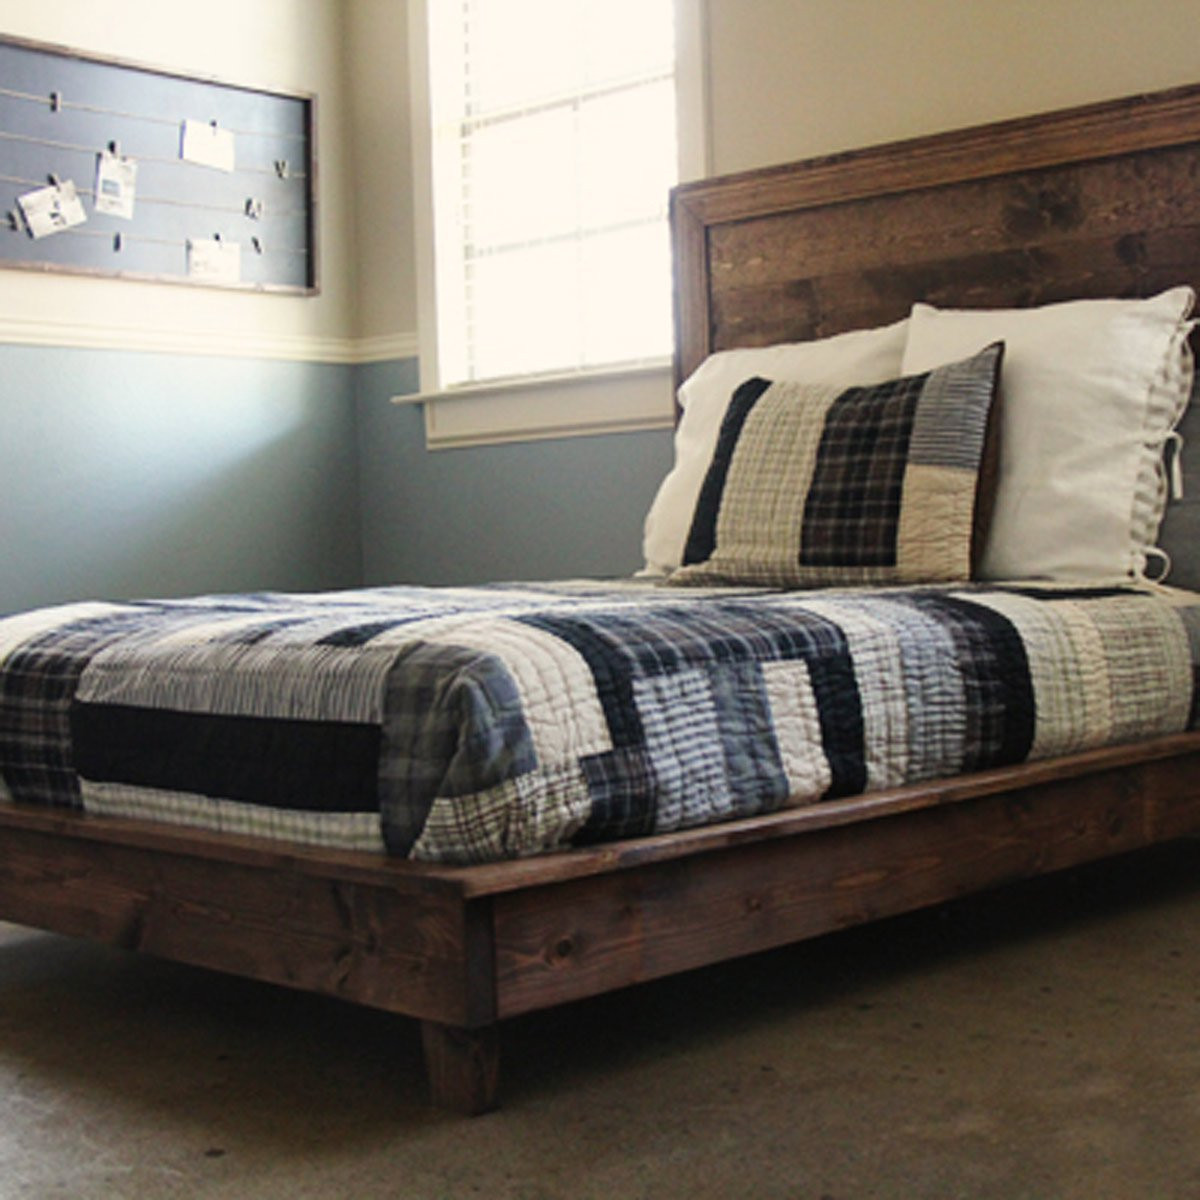 Best ideas about DIY Platform Bed . Save or Pin 10 Awesome DIY Platform Bed Designs — The Family Handyman Now.